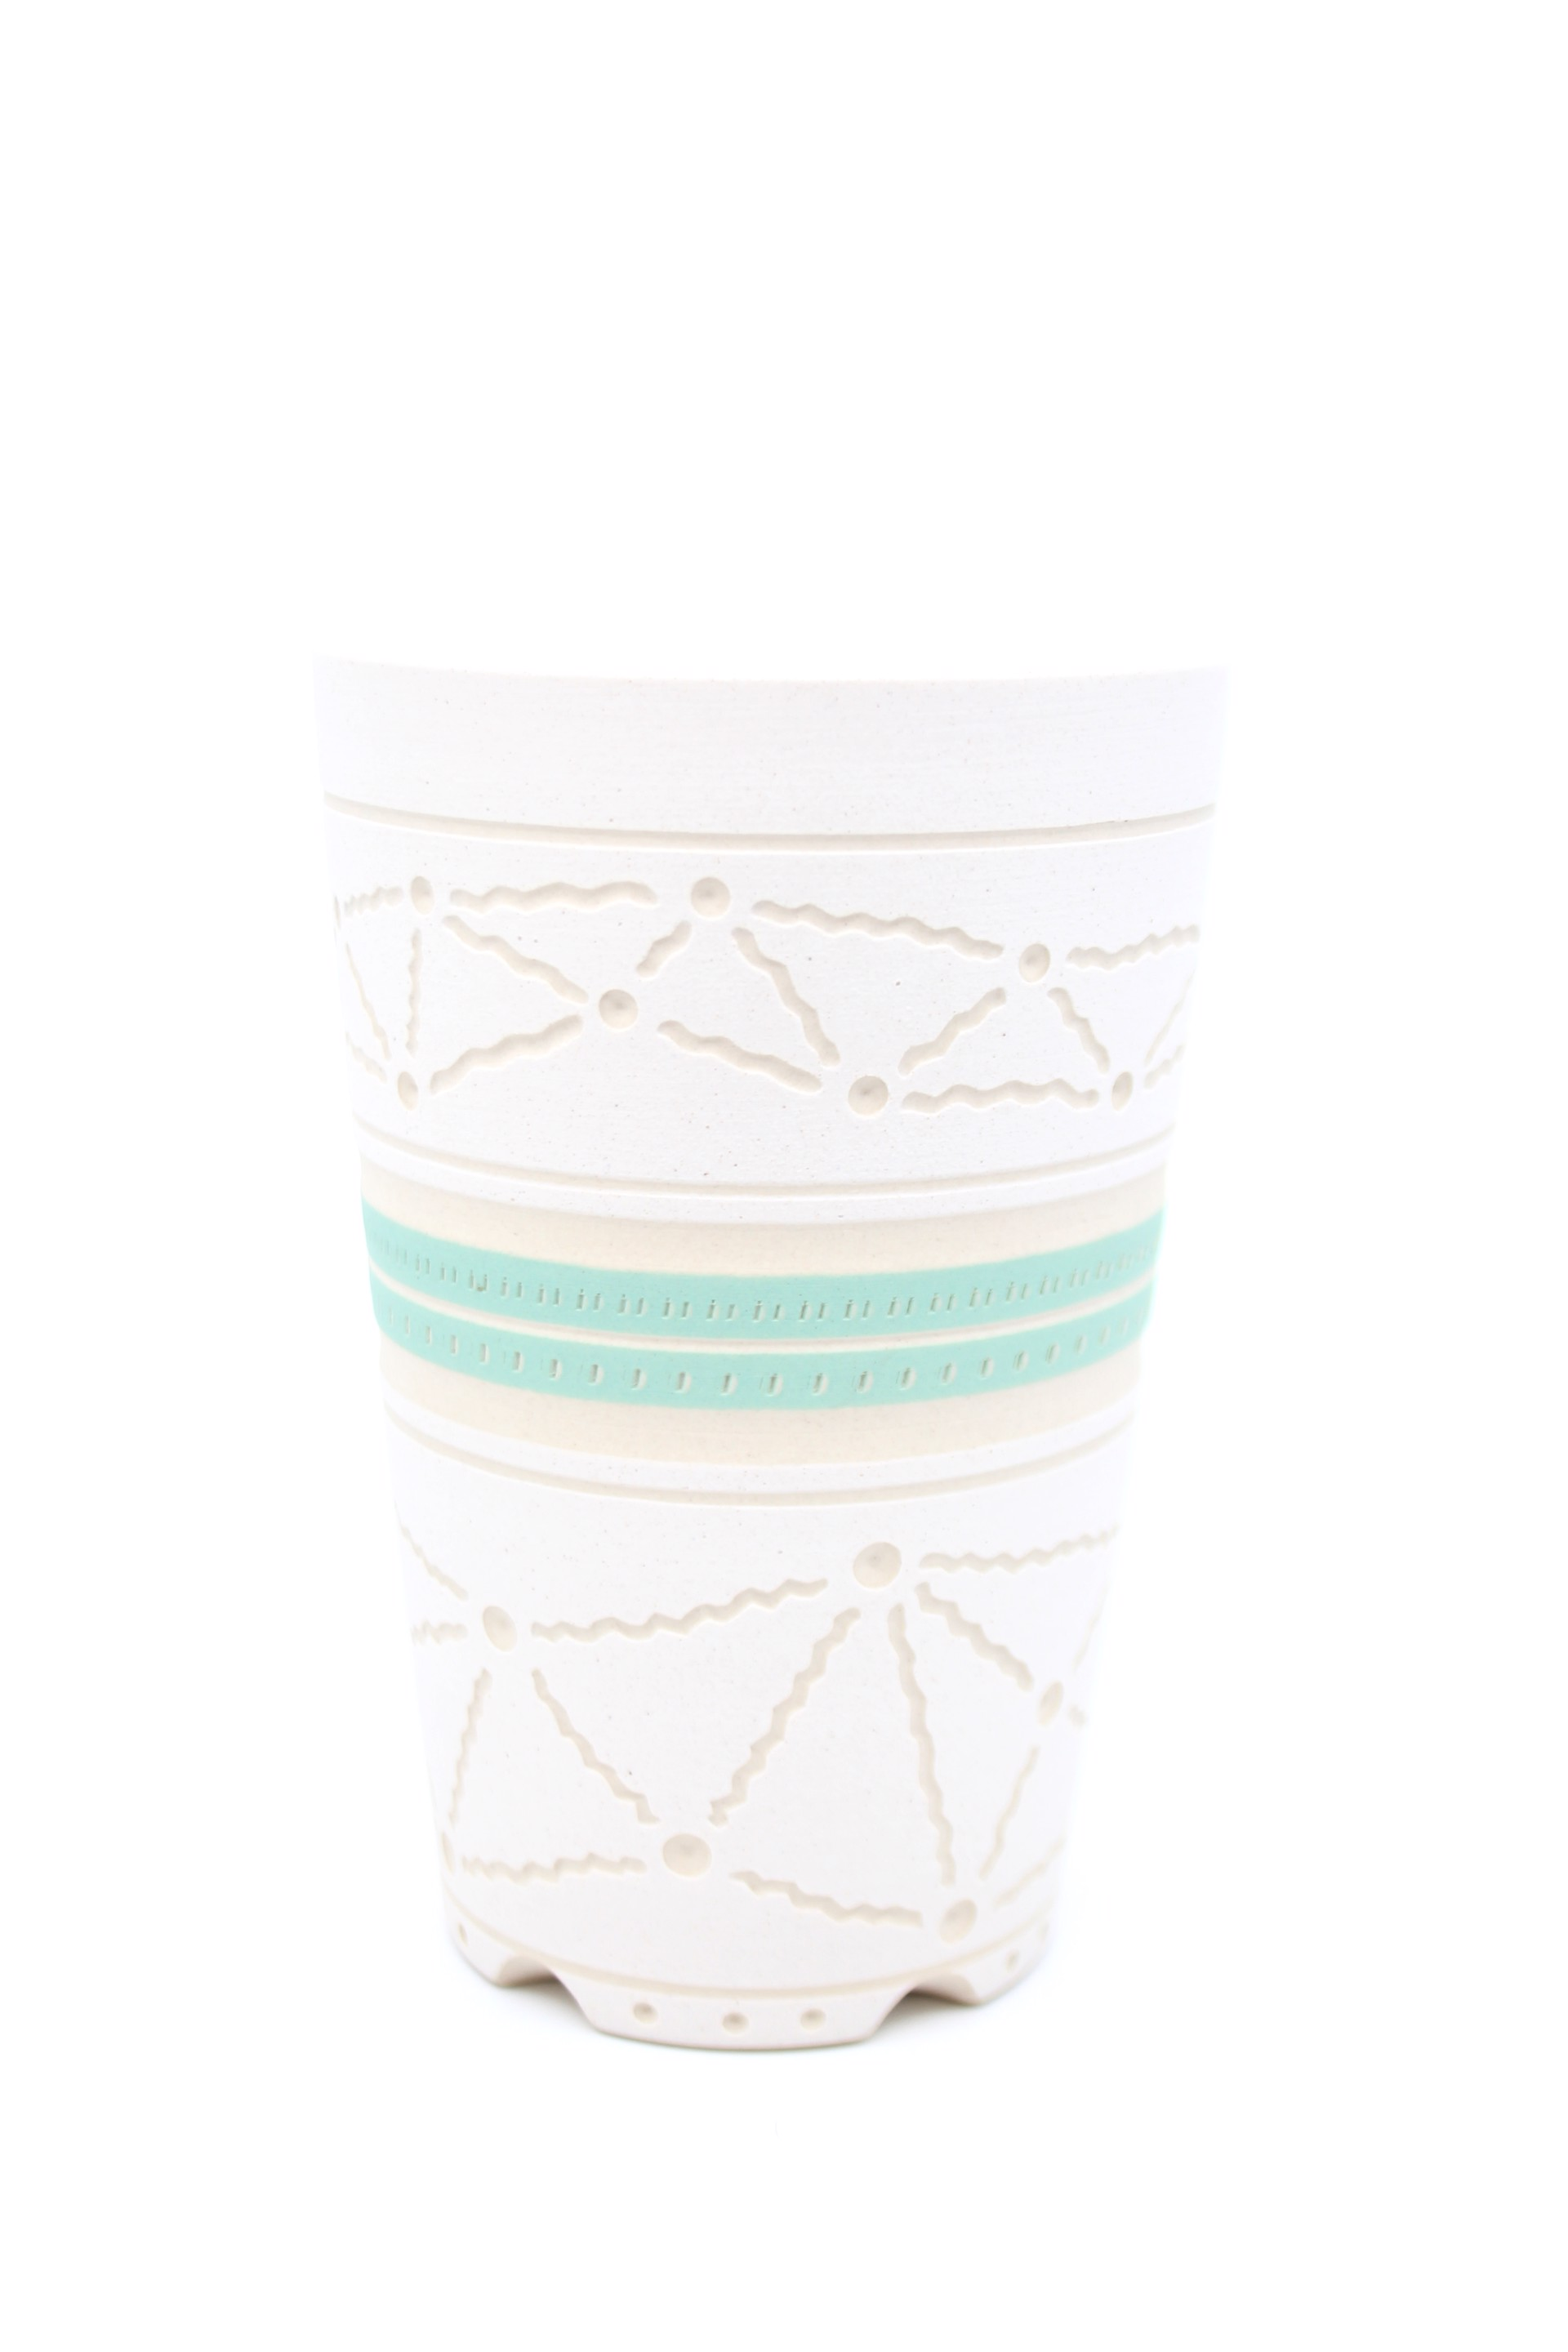 White/Mint Tall Cup by Chris Casey